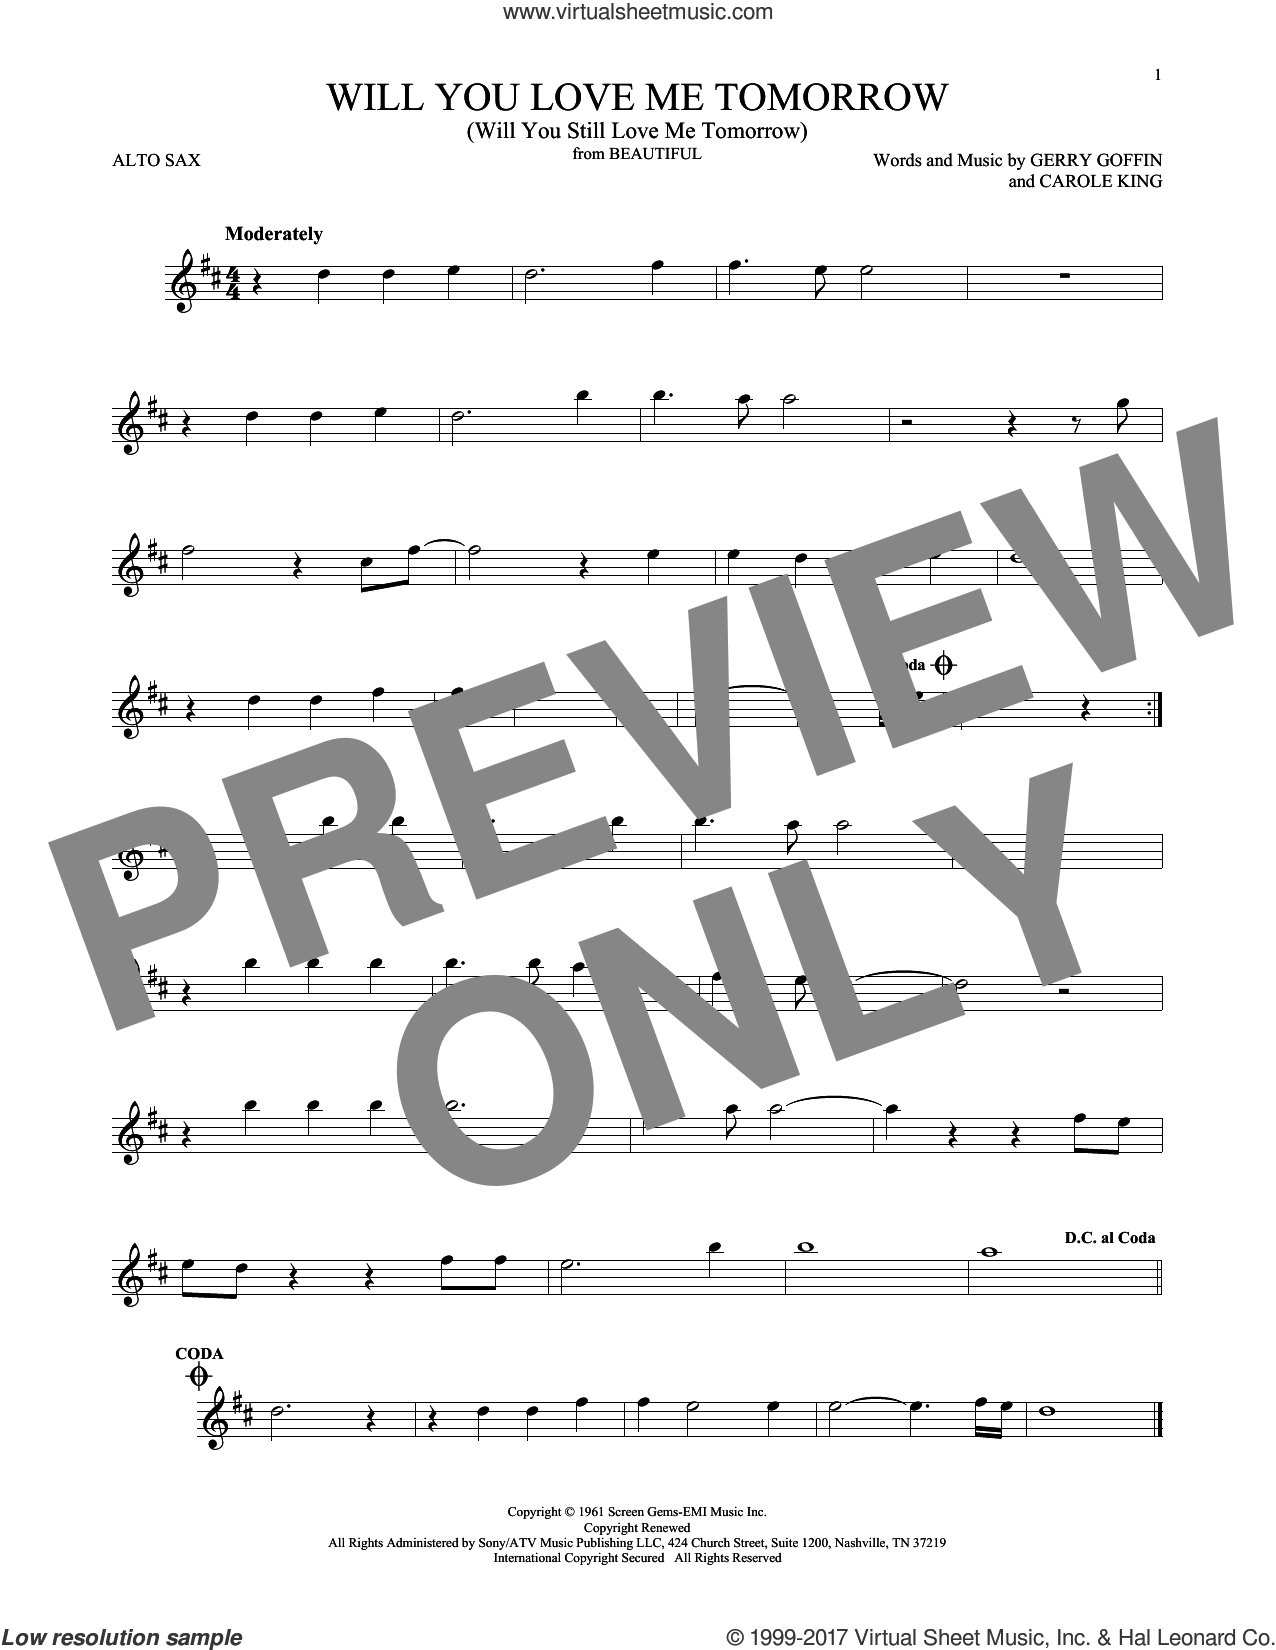 Will You Love Me Tomorrow (Will You Still Love Me Tomorrow) sheet music for alto saxophone solo by The Shirelles, Carole King and Gerry Goffin, intermediate skill level